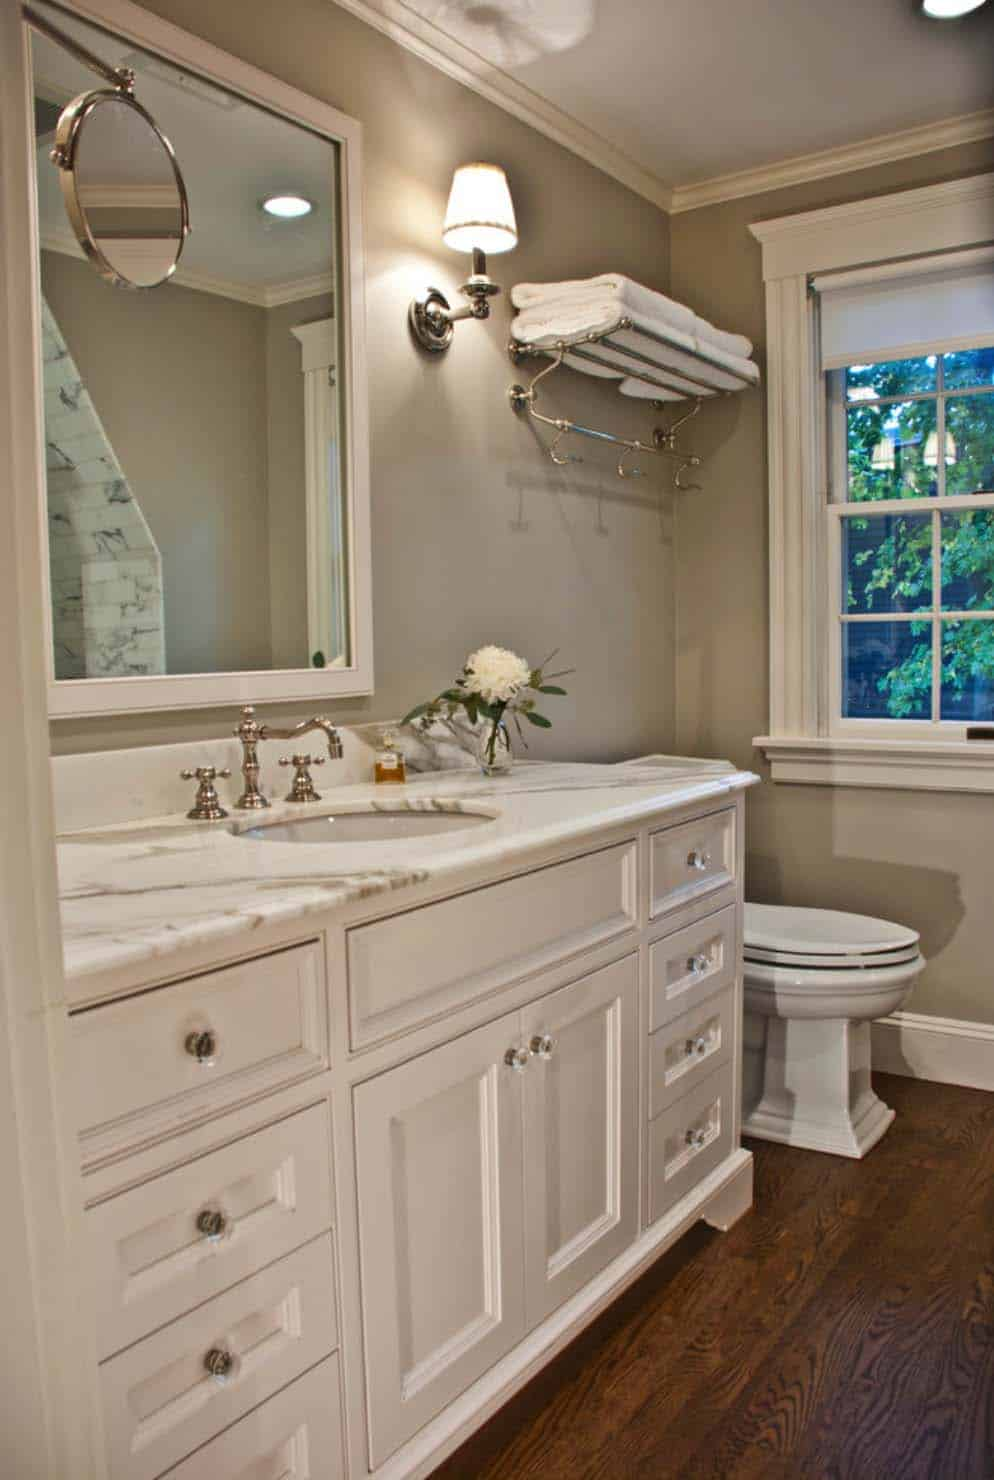 53 Most fabulous traditional style bathroom designs ever on Bathroom Remodel Design Ideas  id=83496